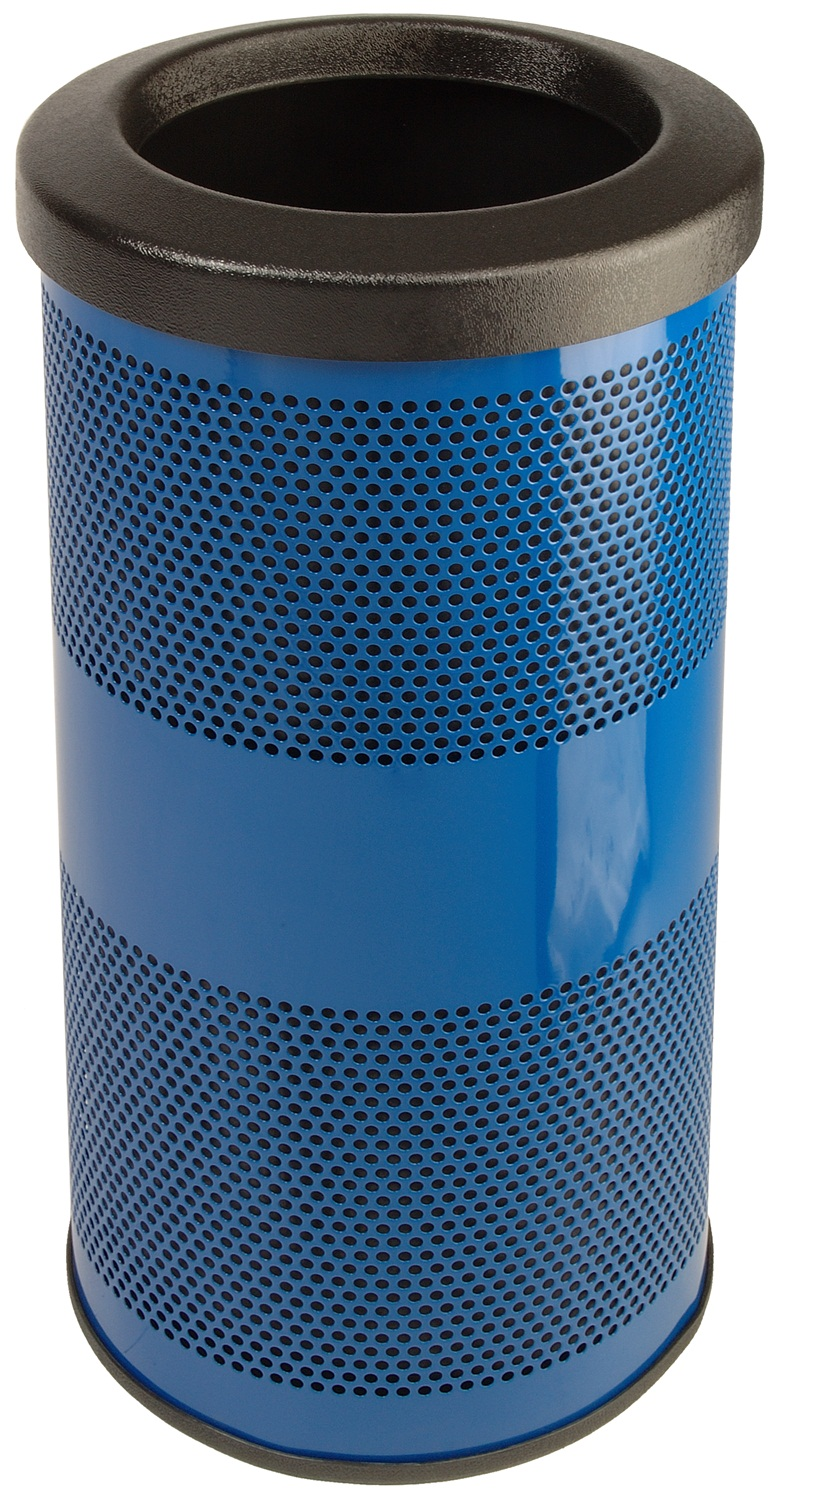 Outdoor Perforated Steel Receptacle